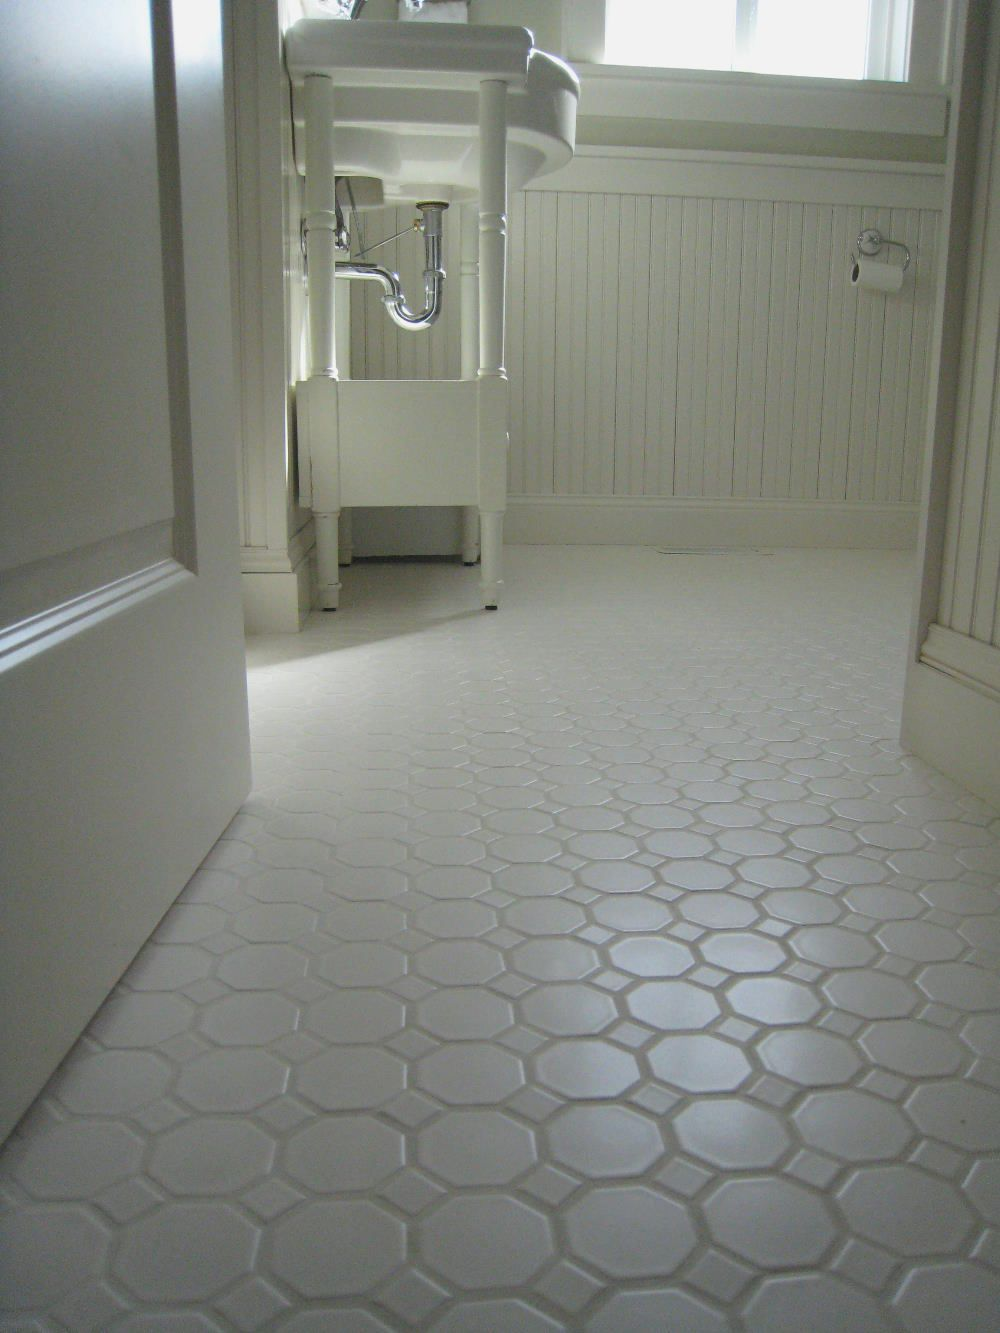 Non slip bathroom floor tiles more picture non slip bathroom floor non slip bathroom floor tiles more picture non slip bathroom floor tiles please visit dailygadgetfo Gallery